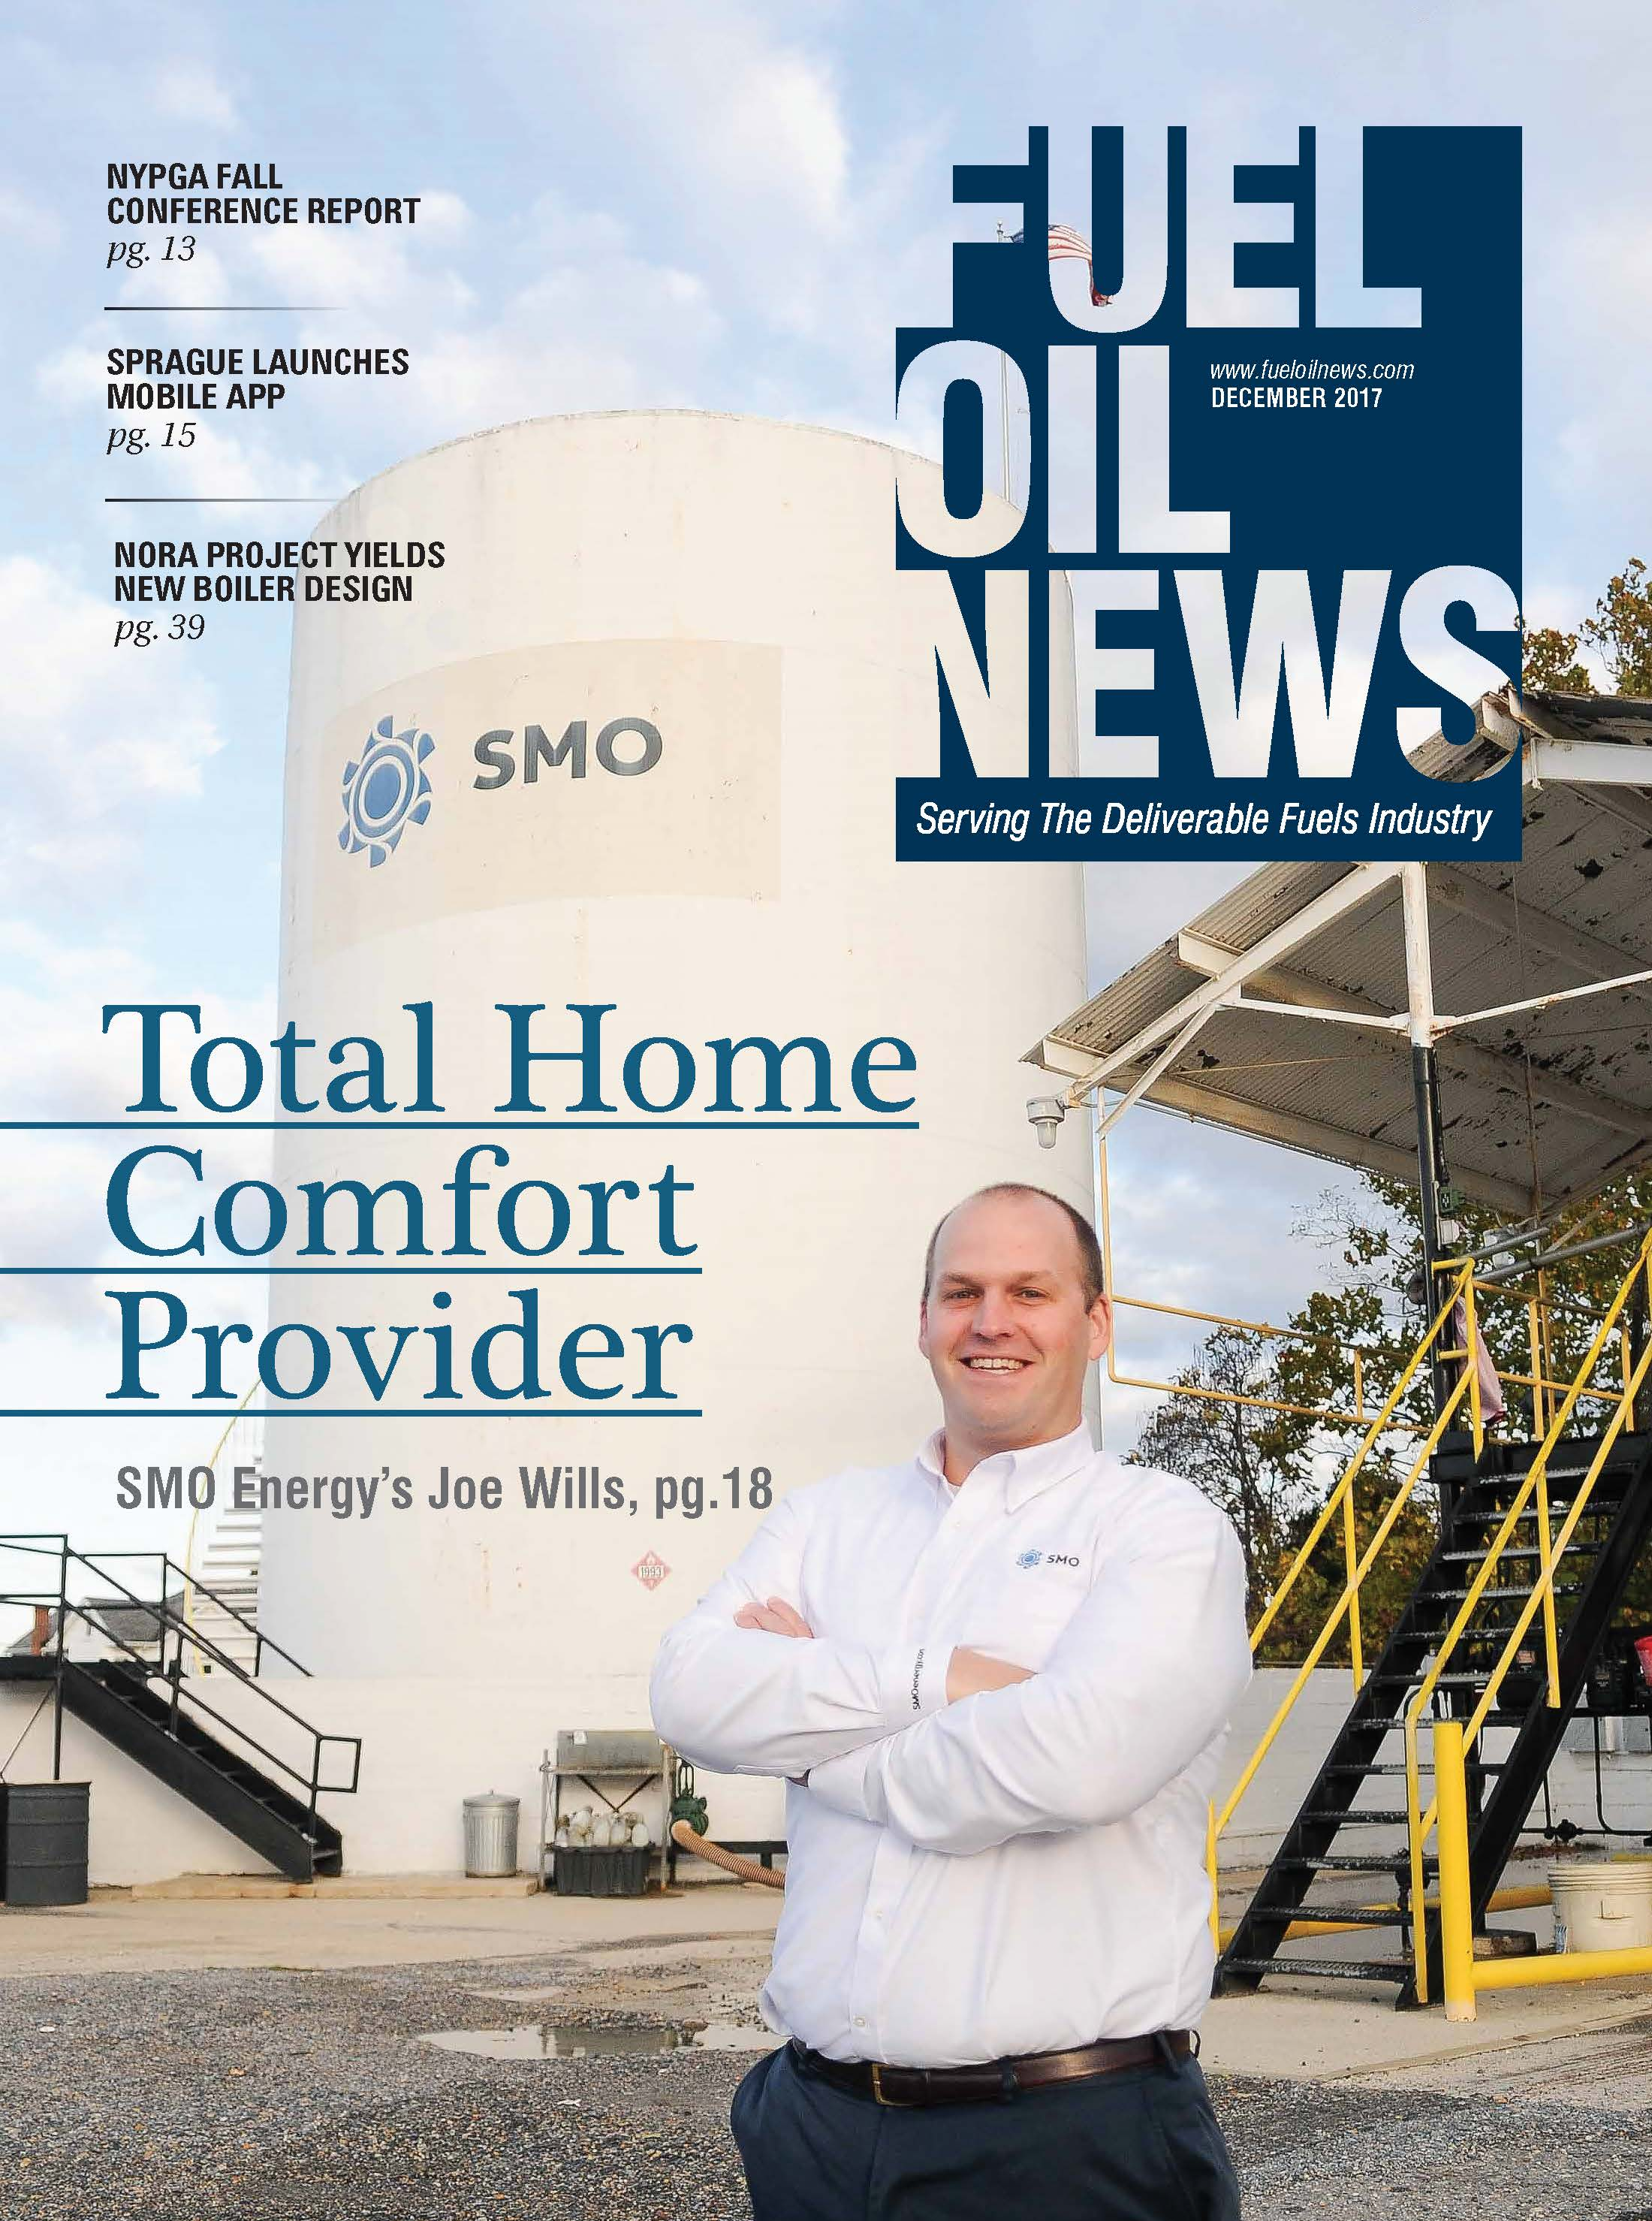 Joe Wills, CEO of SMO Energy featured on Fuel Oil News by Ana Isabel Photography